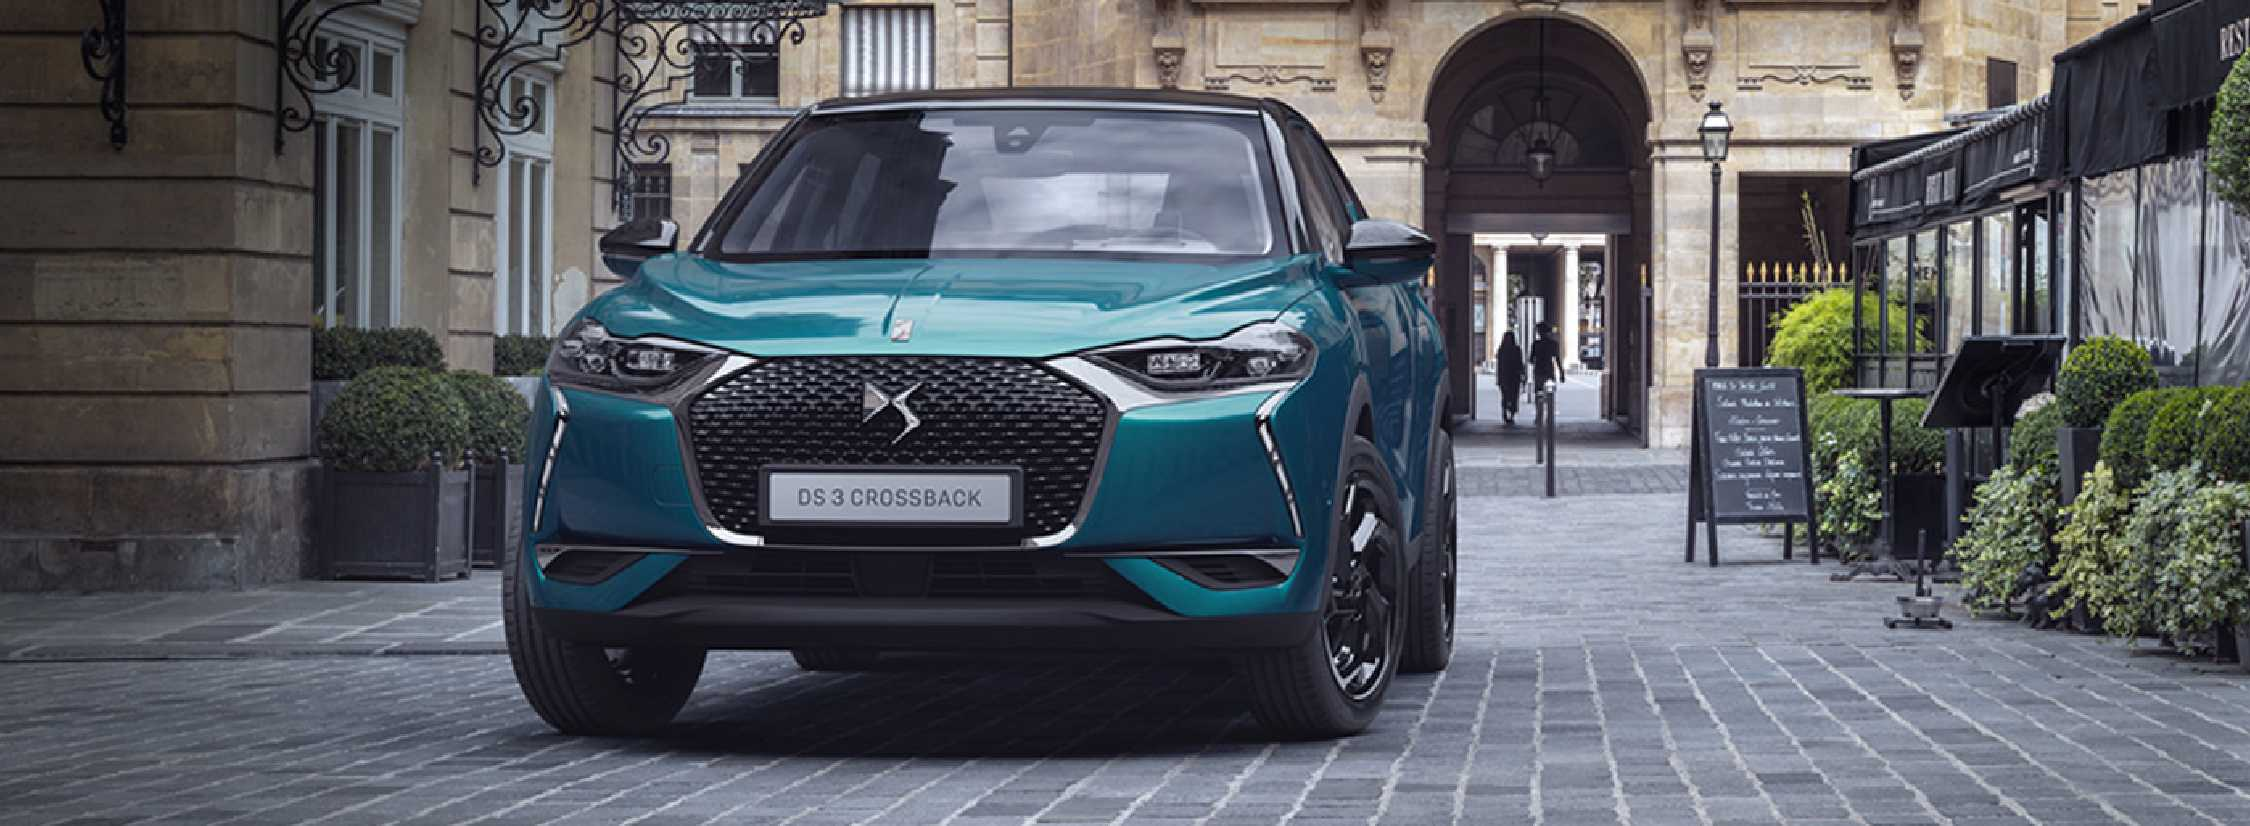 DS 3 CROSSBACK BB